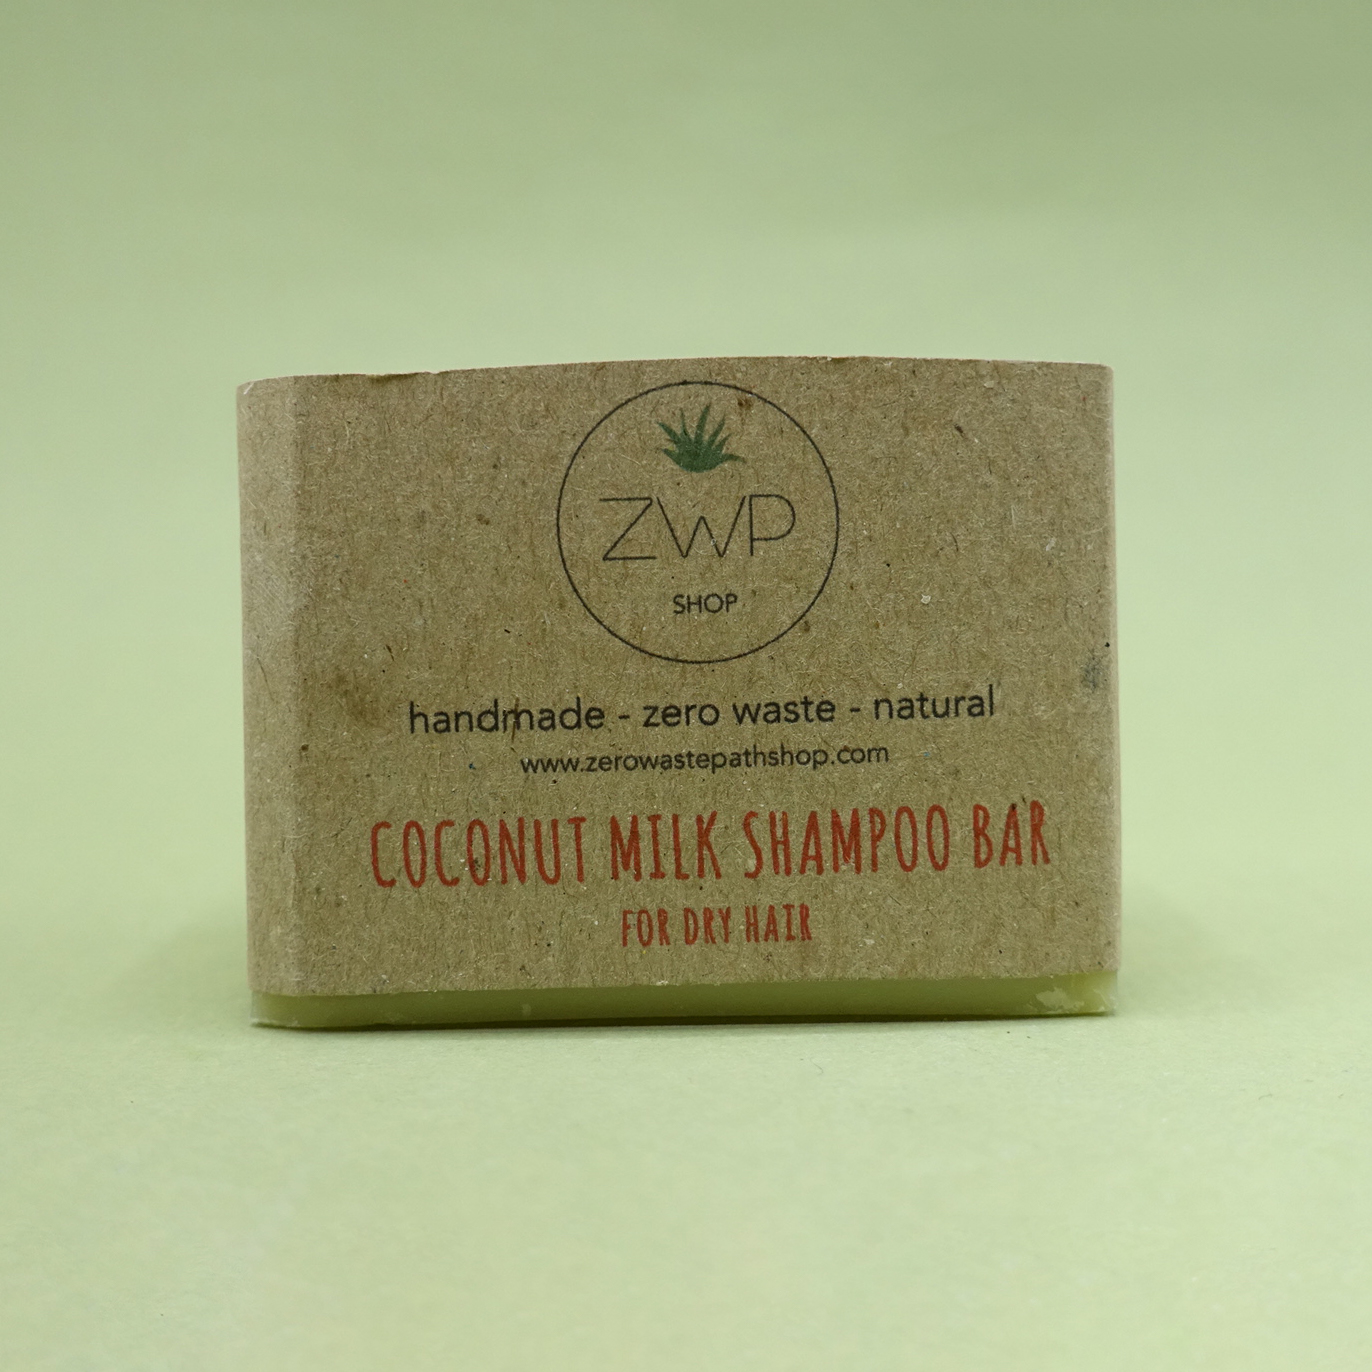 Coconut Milk Shampoo Bar